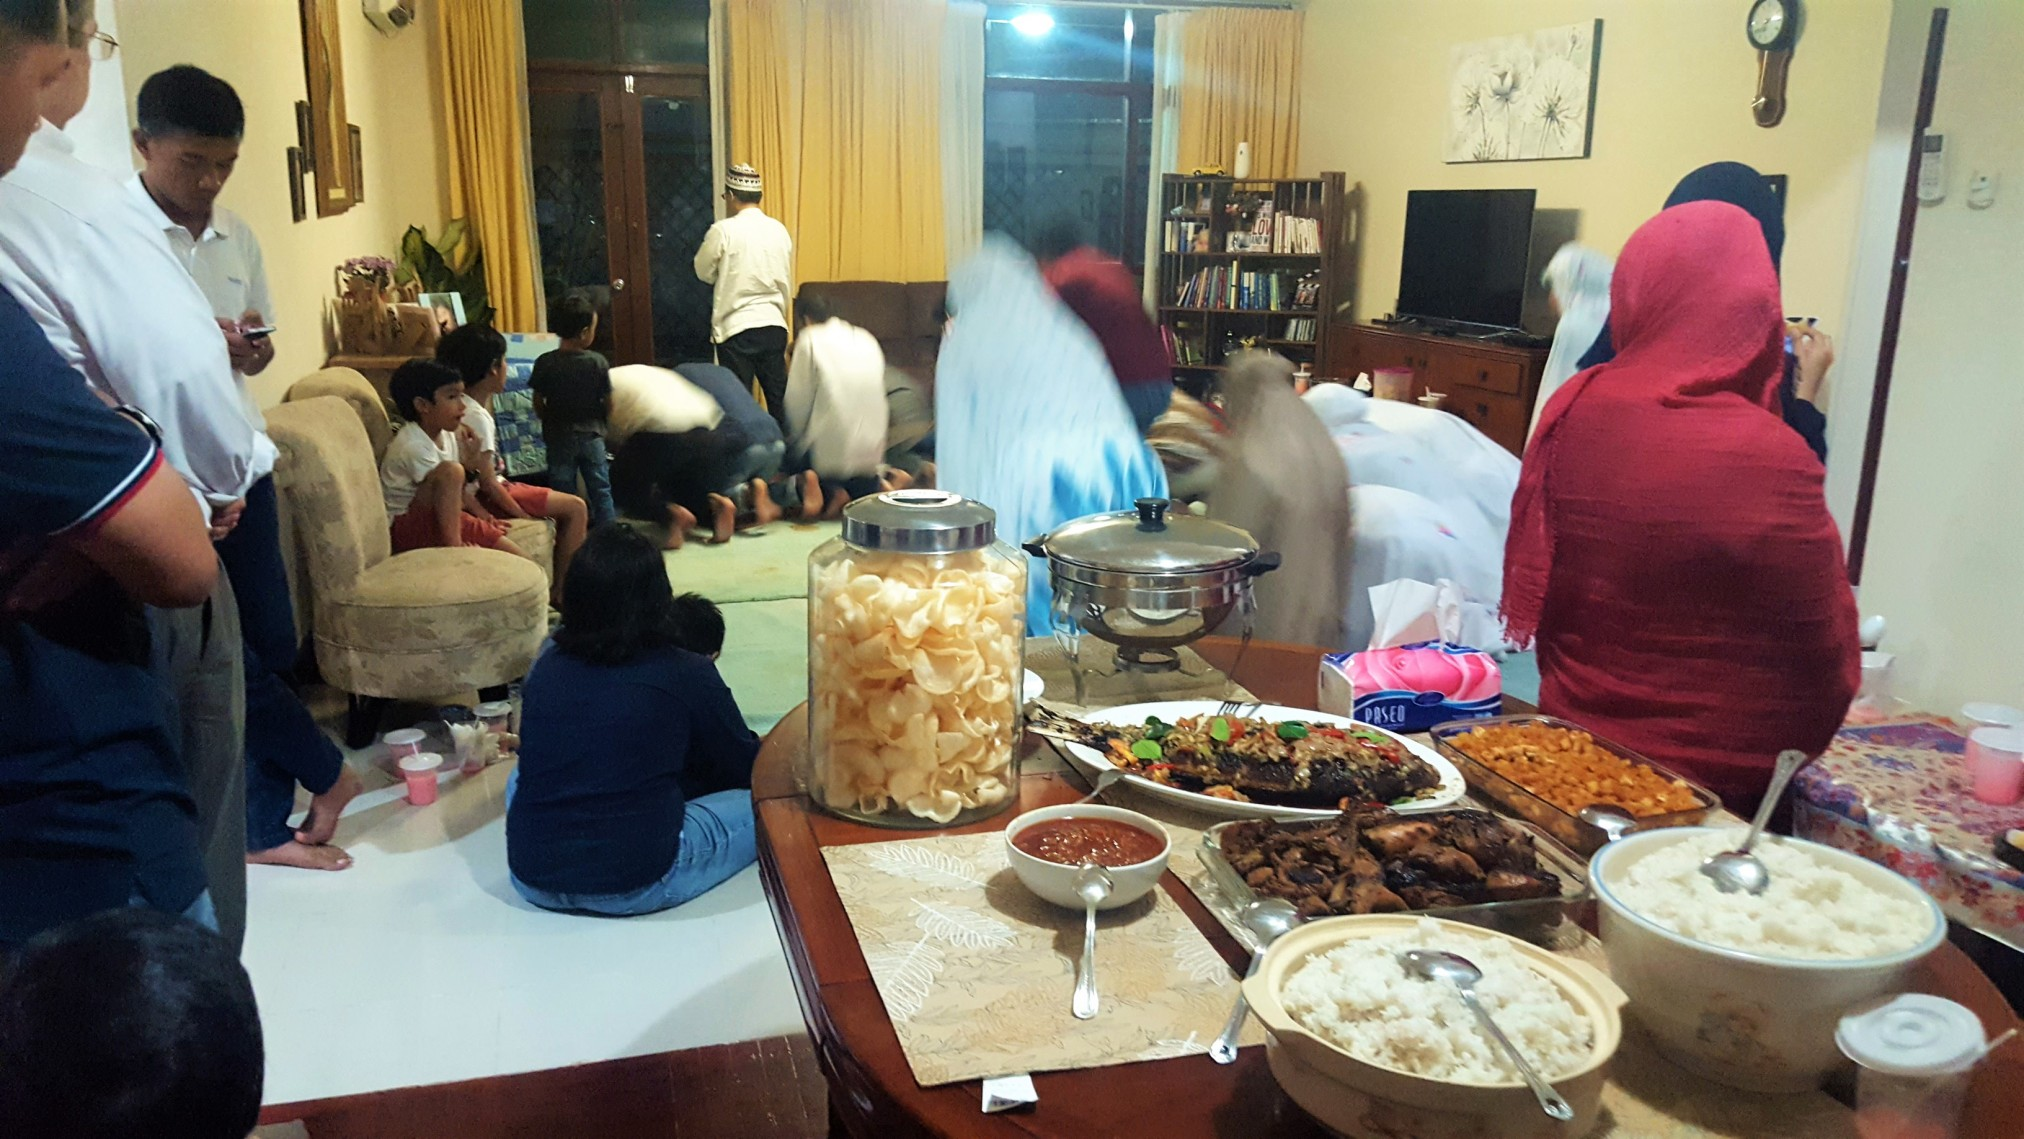 Experiencing Iftar: Breaking the Fast during Ramadan